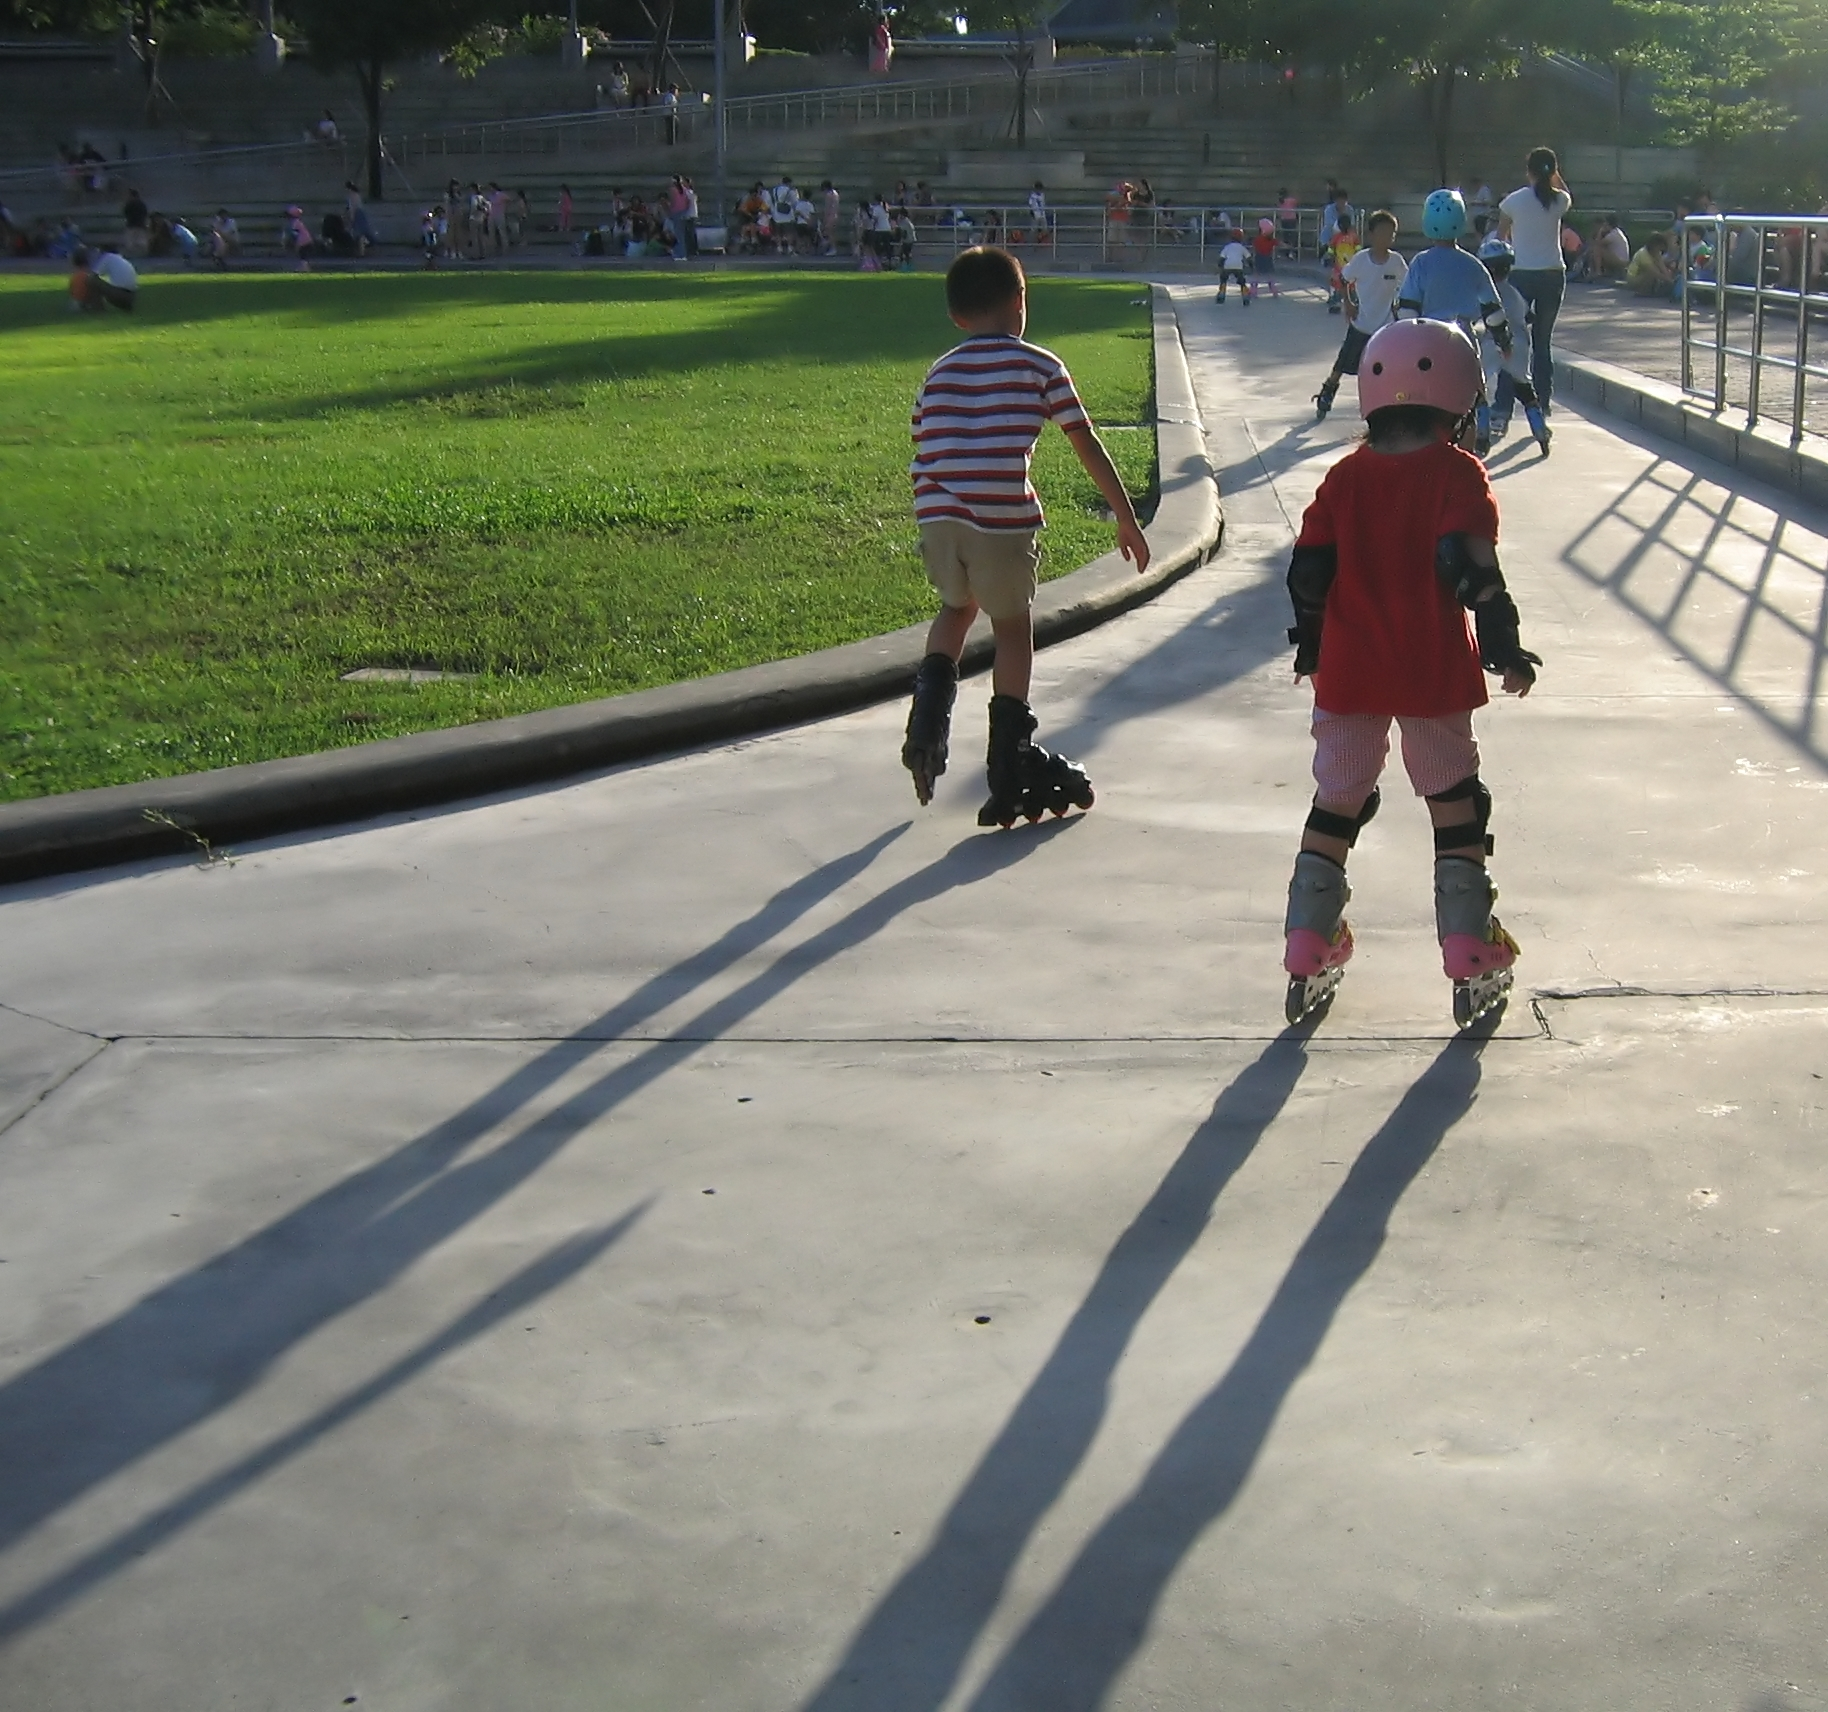 Rollerbladers in the Park, Afternoon, Protection, Sun, Sport, HQ Photo